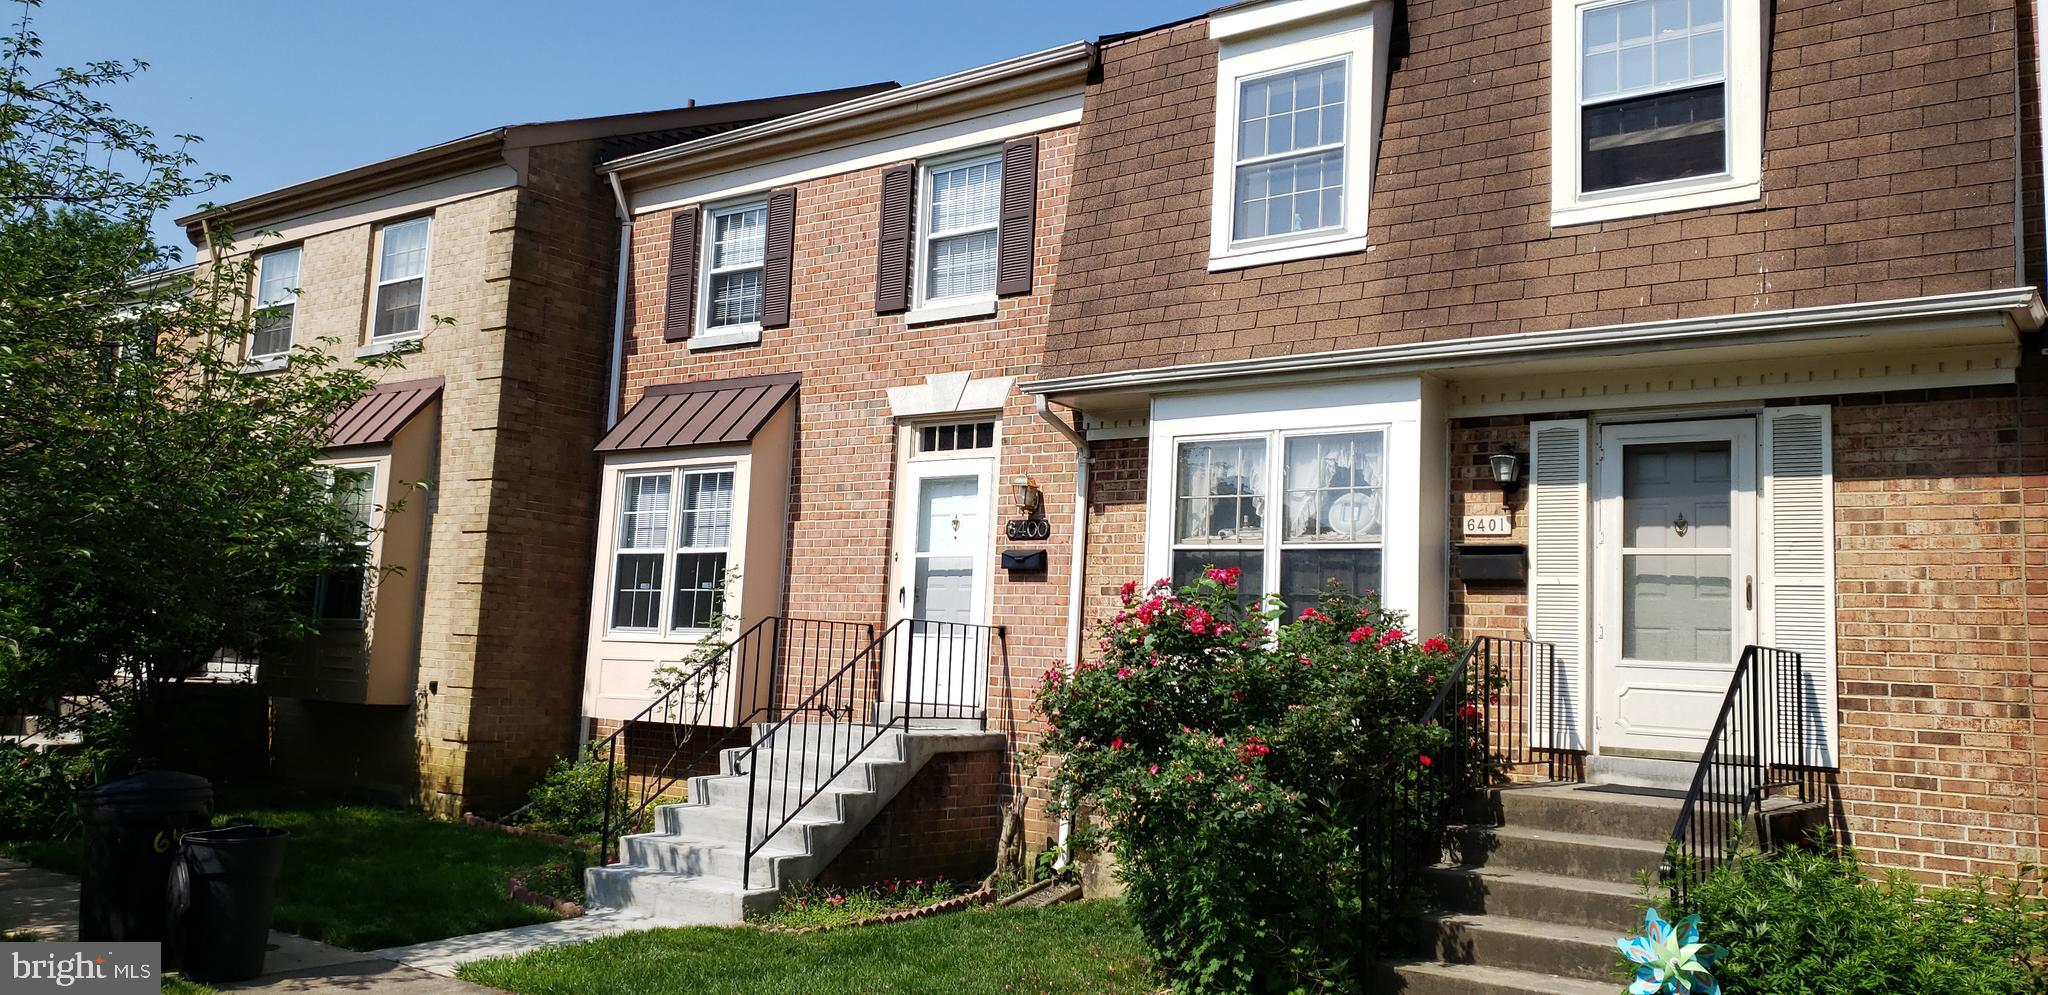 Reduced for  fast sale!! don't miss this opportunity, Commuters! dream Close to Ft Belvoir Few miles to the Pentagon, DC, Airport. 3 Levels Upgraded  Kitchen, Bathrooms, Hardwood floors through-out, Two assigns parking 006 and 122 could walk to Metro don't miss this opportunity make an offer!! 703-864-9802.